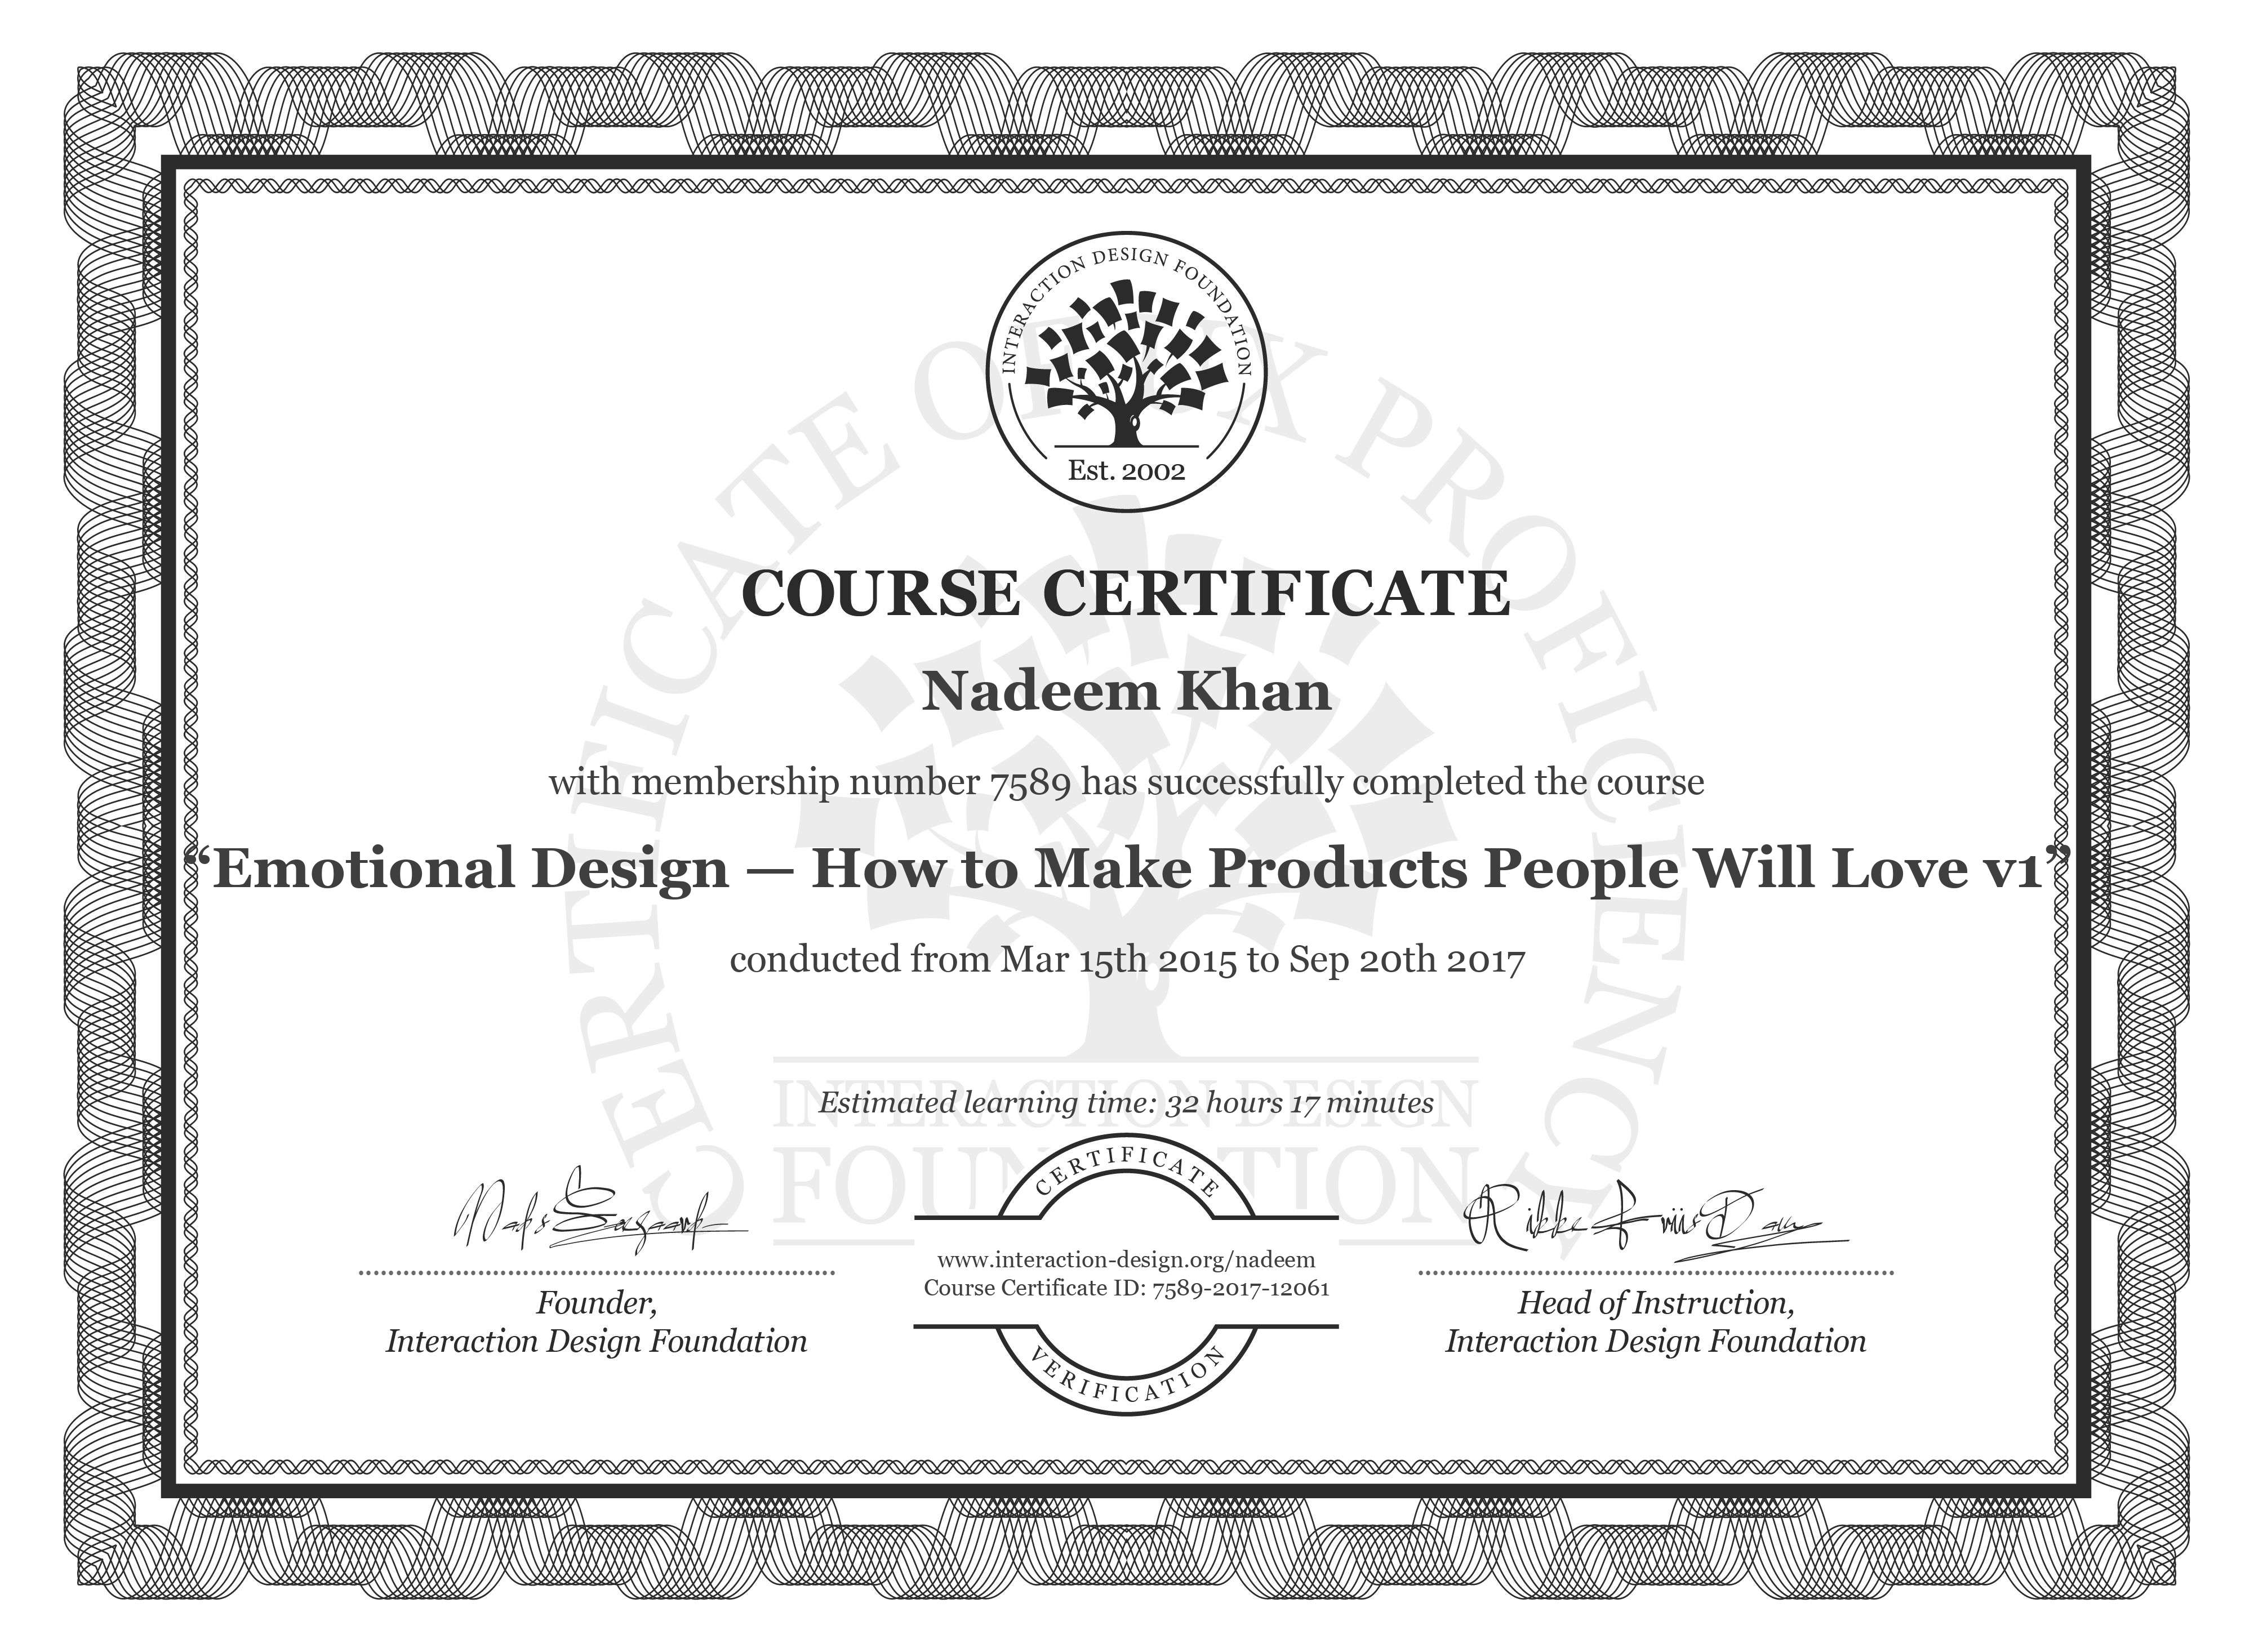 Nadeem Khan's Course Certificate: Emotional Design: How to Make Products People Will Love